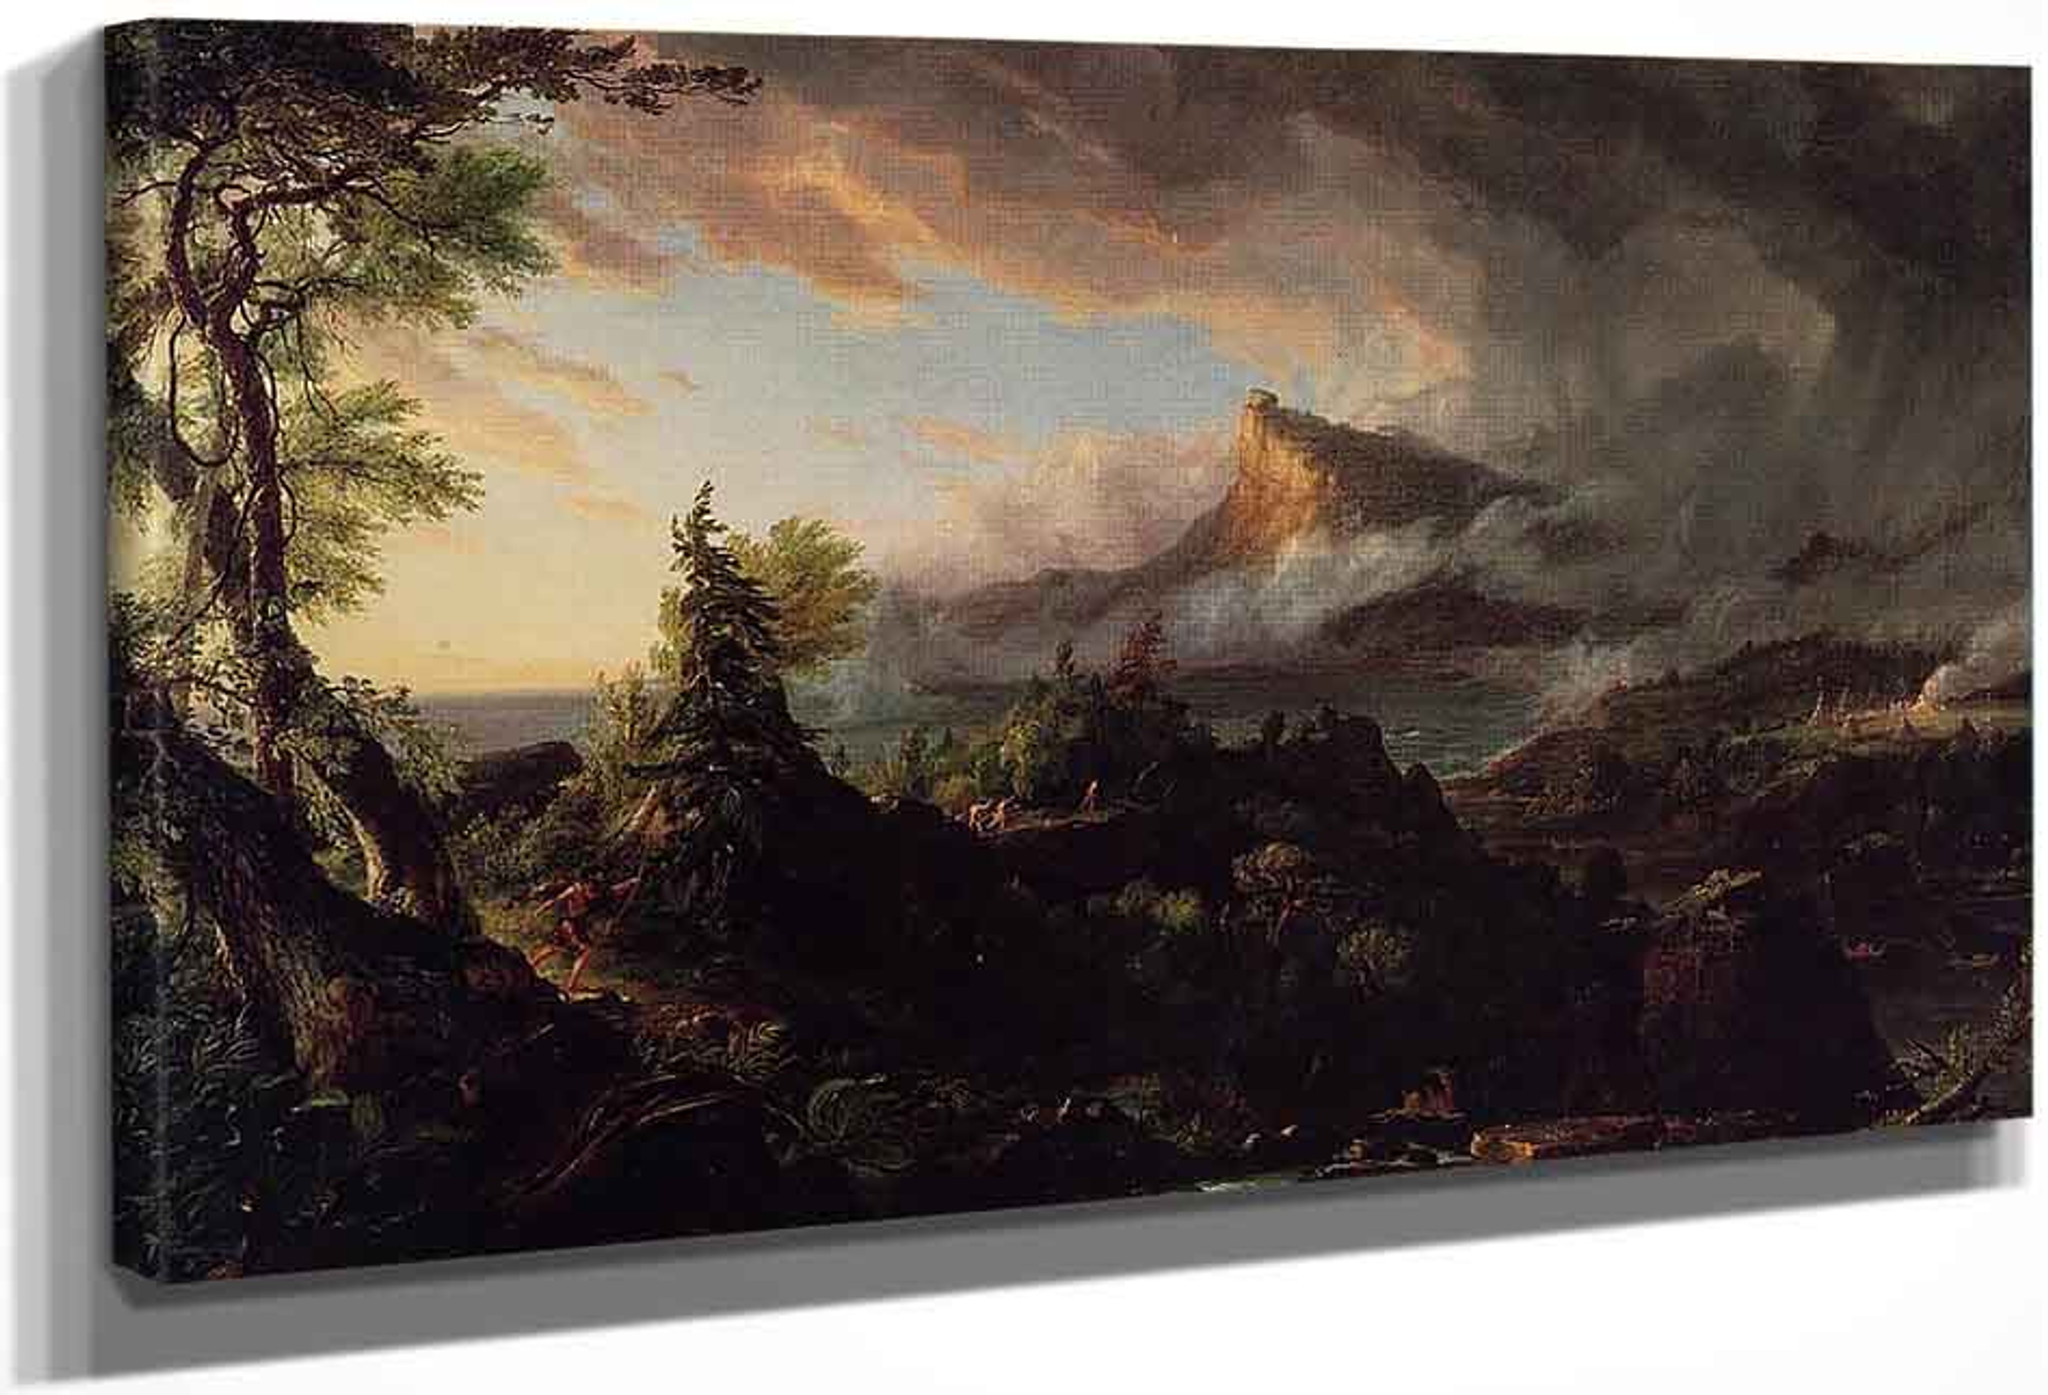 The Course of the Empire Destruction  by Thomas Cole   Giclee Canvas Print Repro